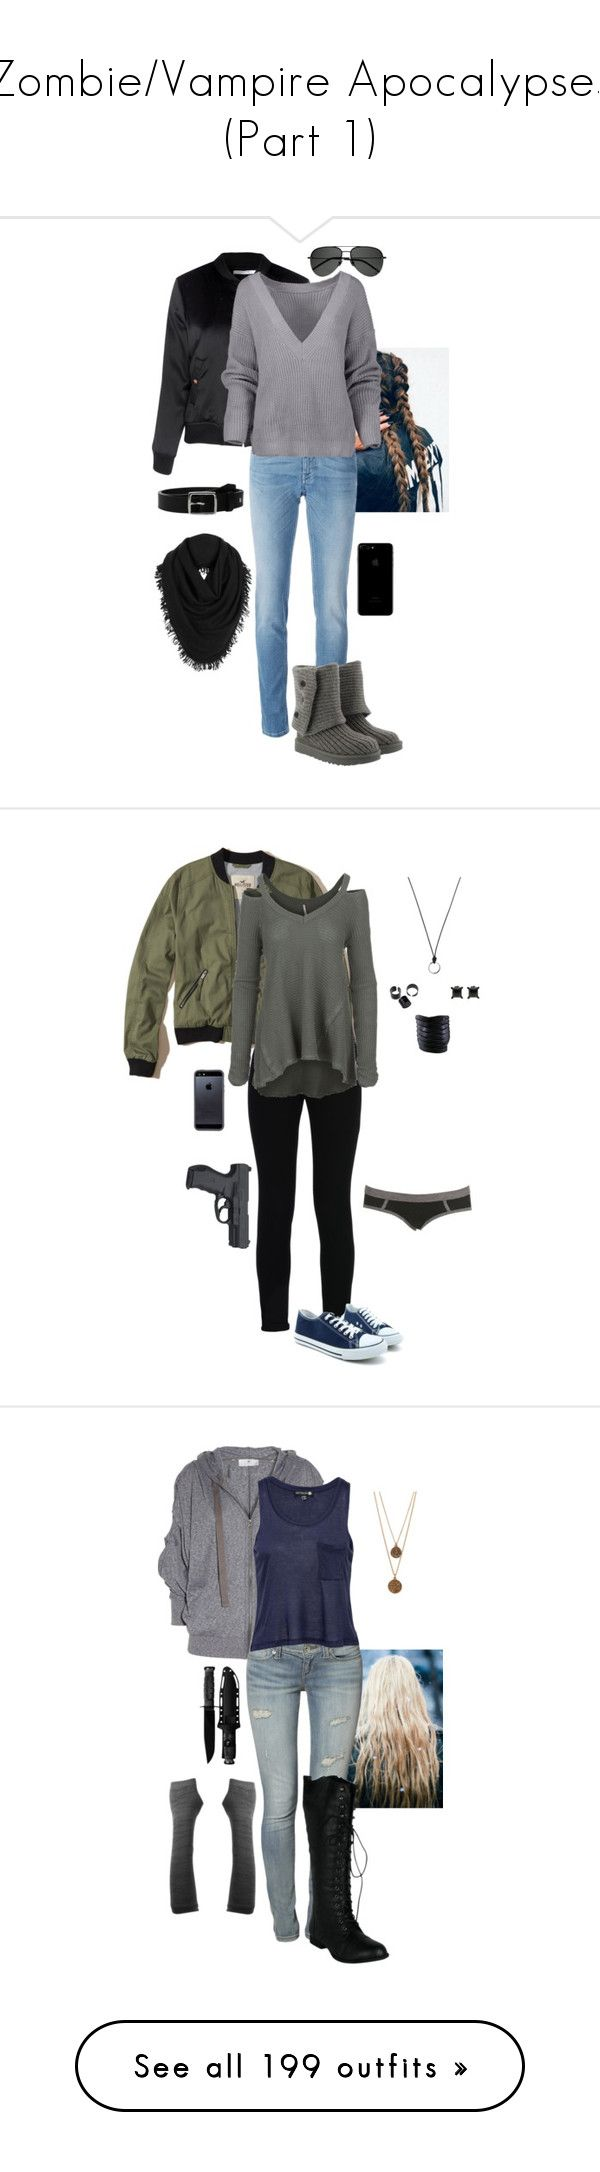 """Zombie/Vampire Apocalypses (Part 1)"" by gone-girl ❤ liked on Polyvore featuring Glamorous, Givenchy, UGG, Yves Saint Laurent, White + Warren, rag & bone, Hollister Co., STELLA McCARTNEY, Free People and Tavik"